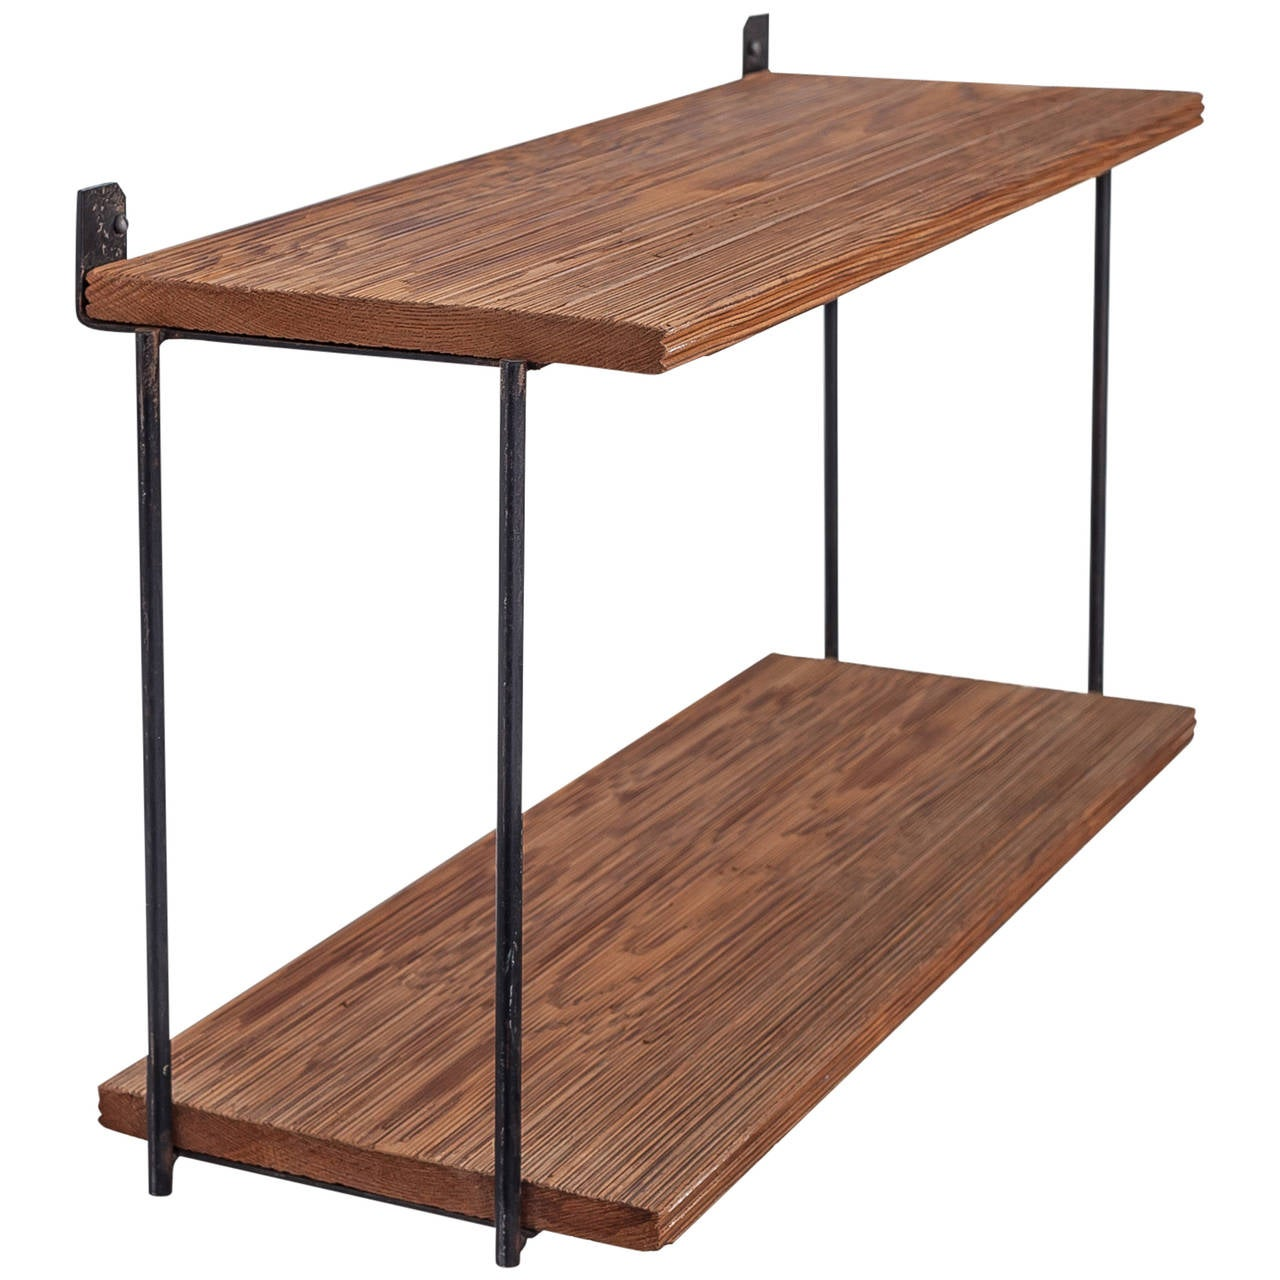 Muriel Coleman Iron and Brushed Wood Shelve Unit